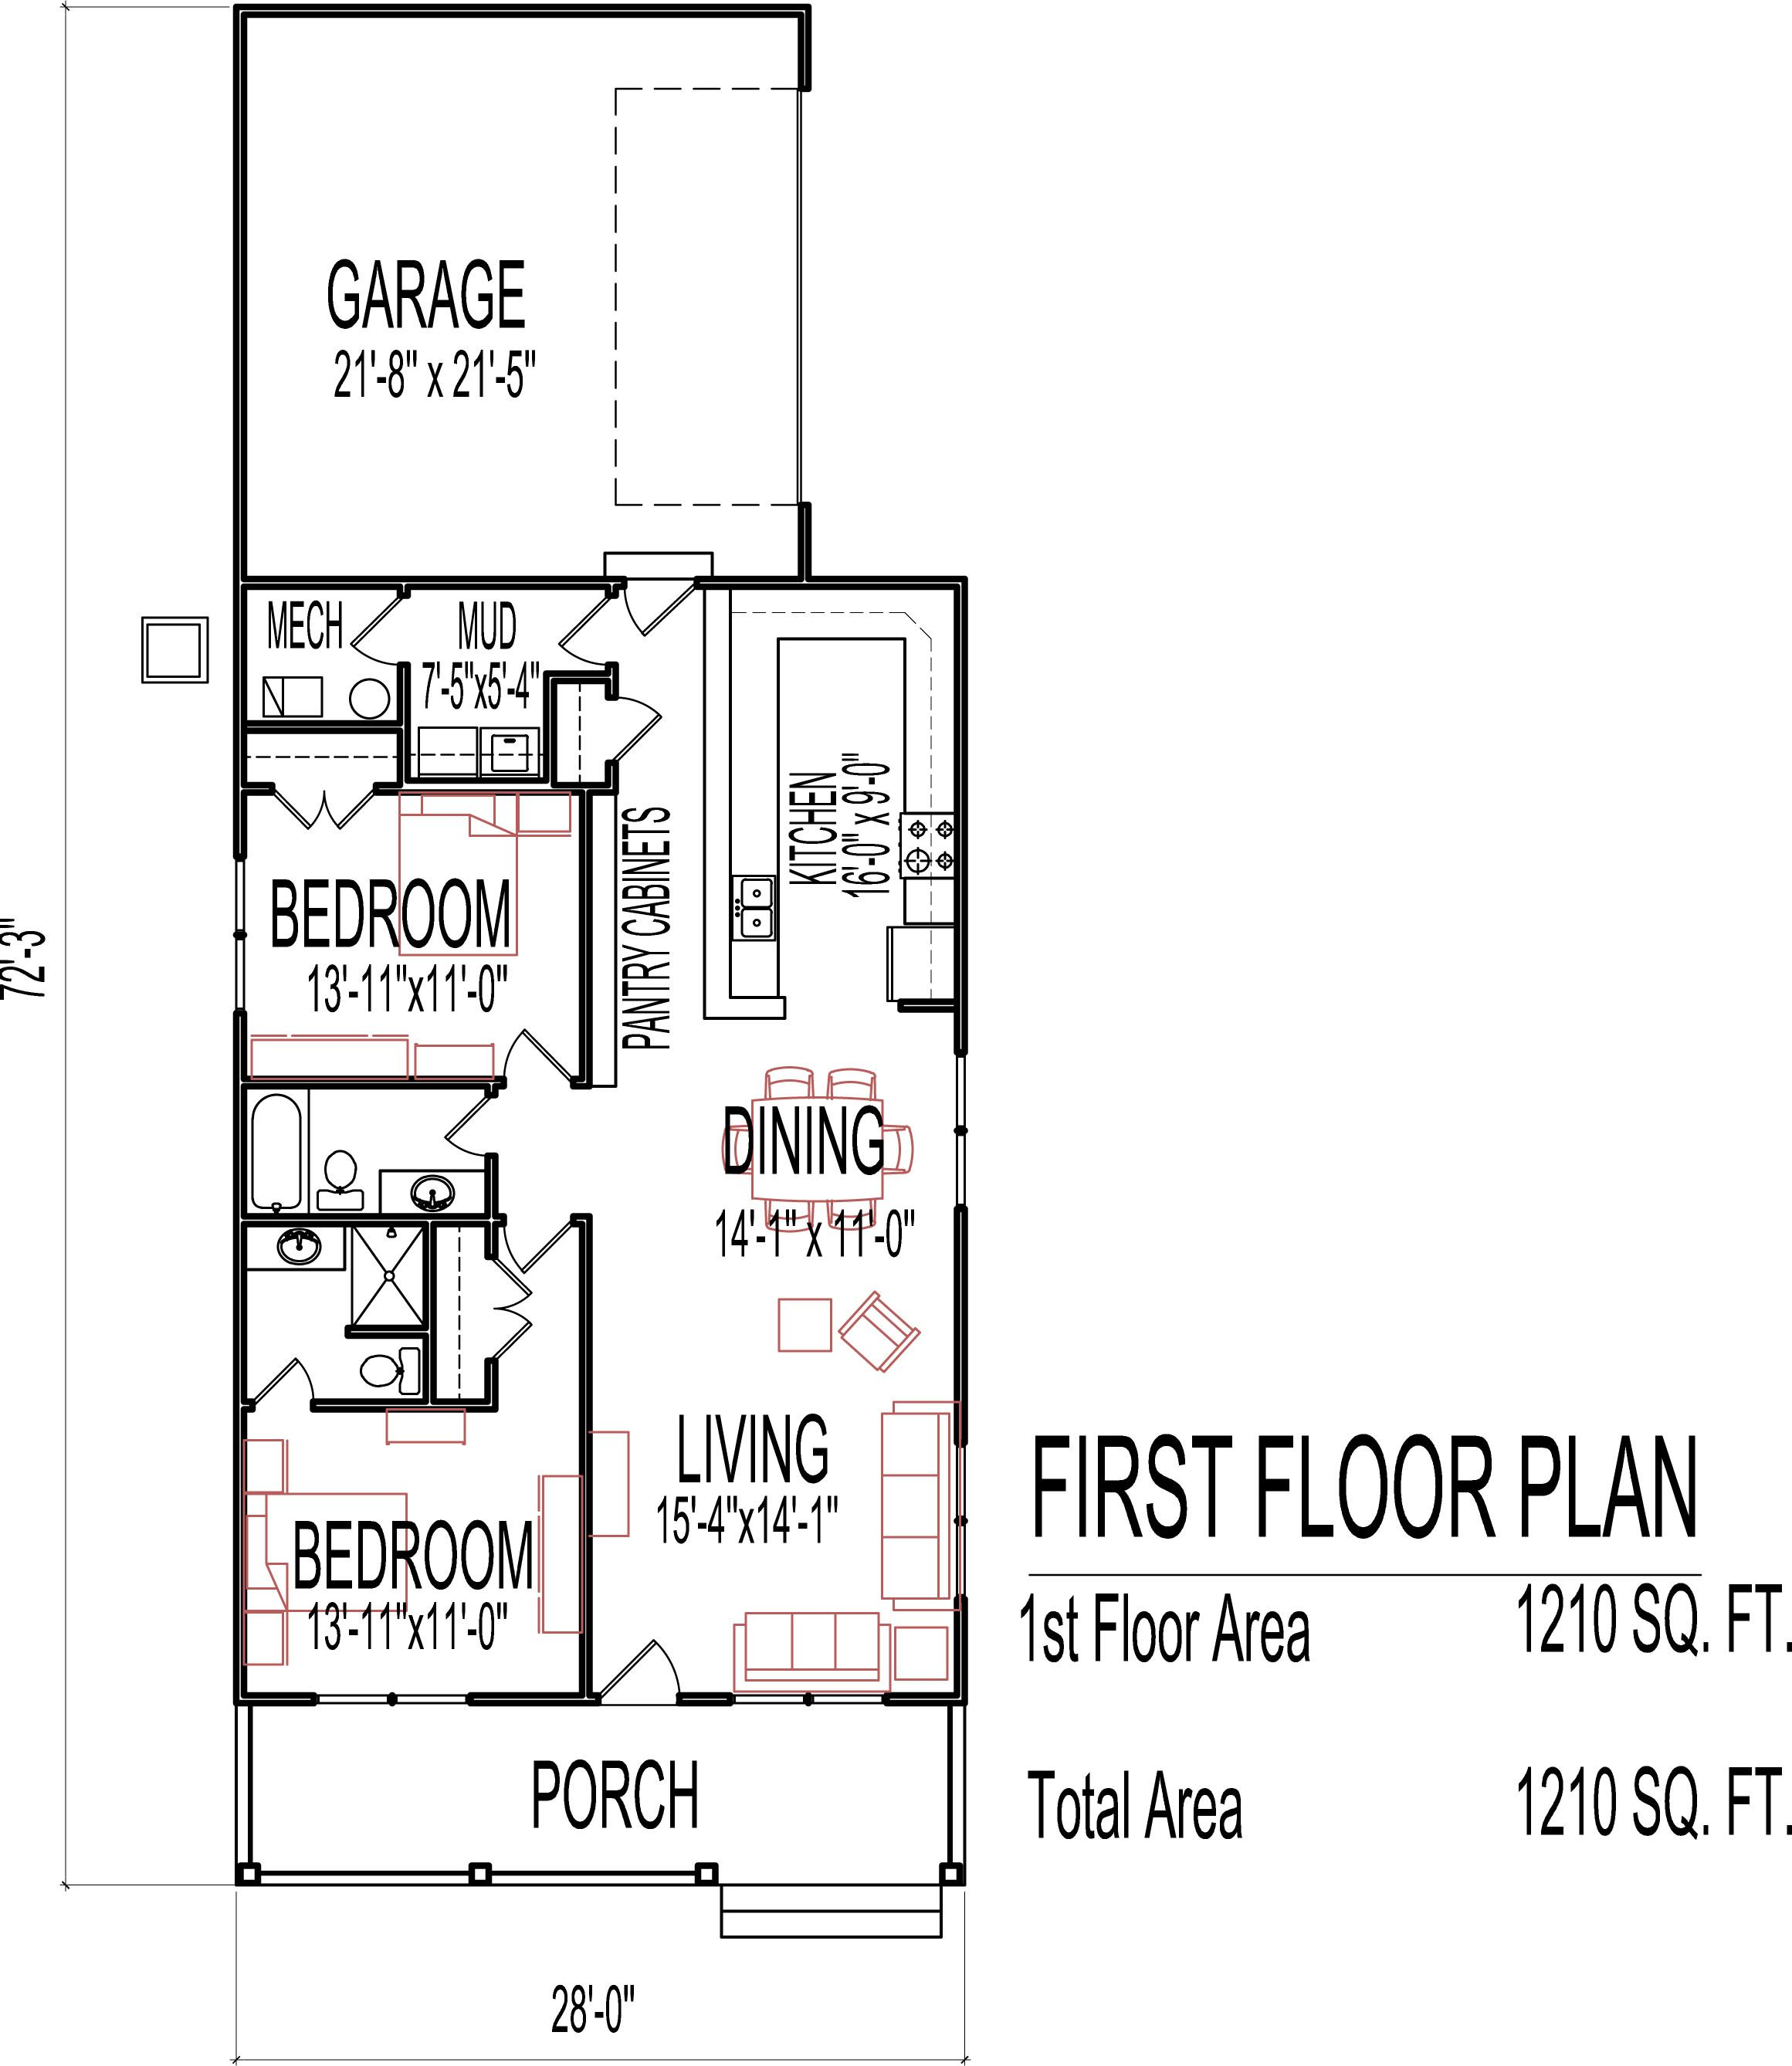 small low cost economical 2 bedroom 2 bath 1200 sq ft single story house floor plans blueprint